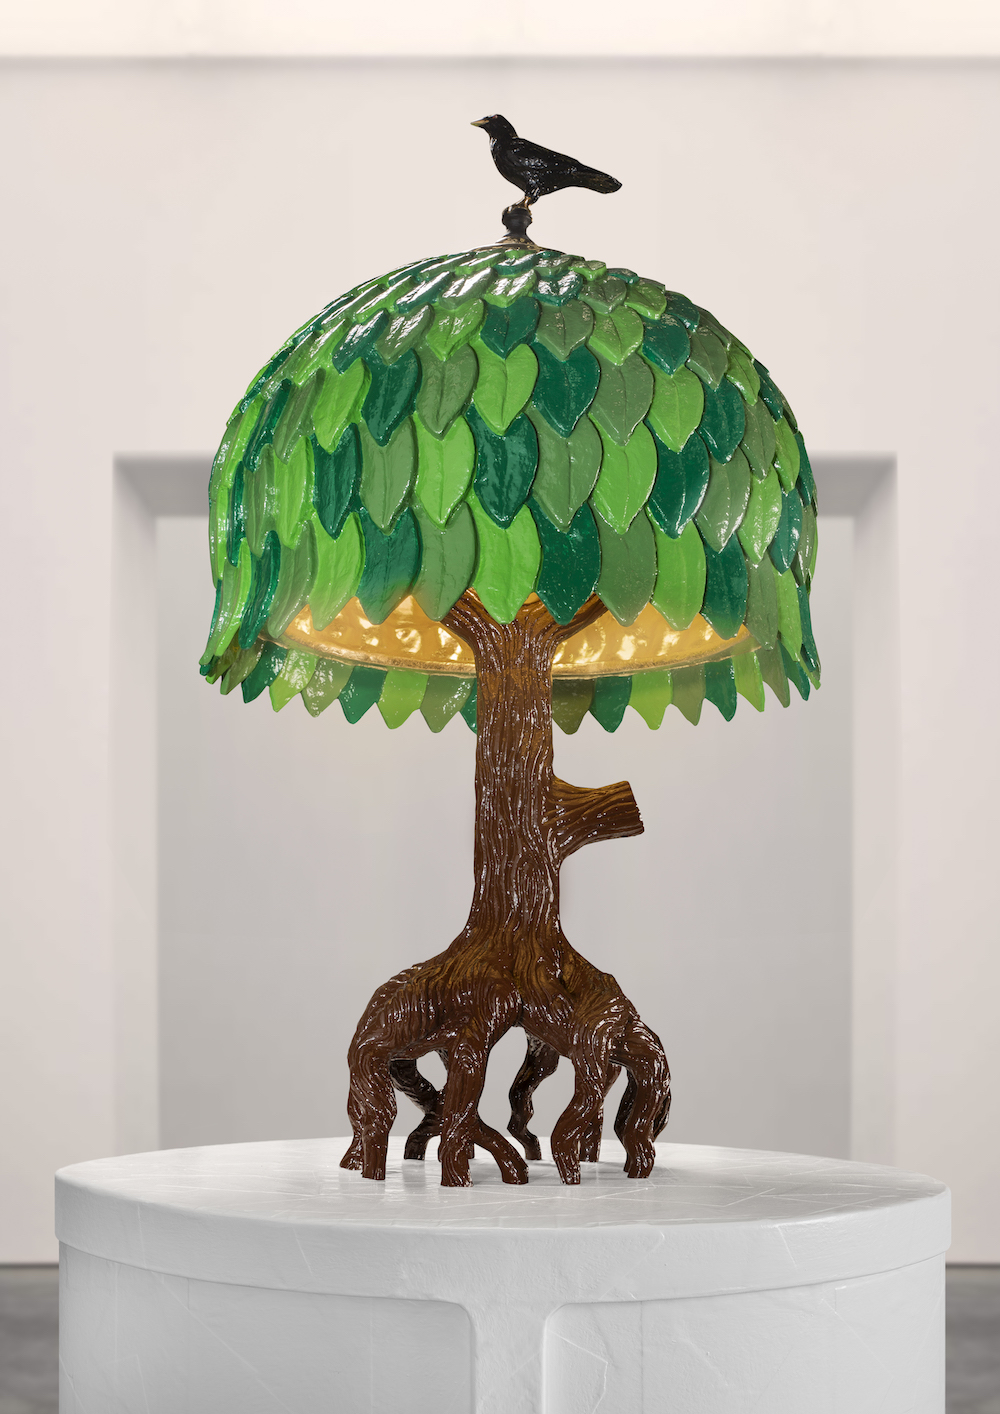 Tiffany Tree Lampe bronze poli patiné, peint à la main, LED, design STUDIO JOB, Carpenters WorkShop Gallery